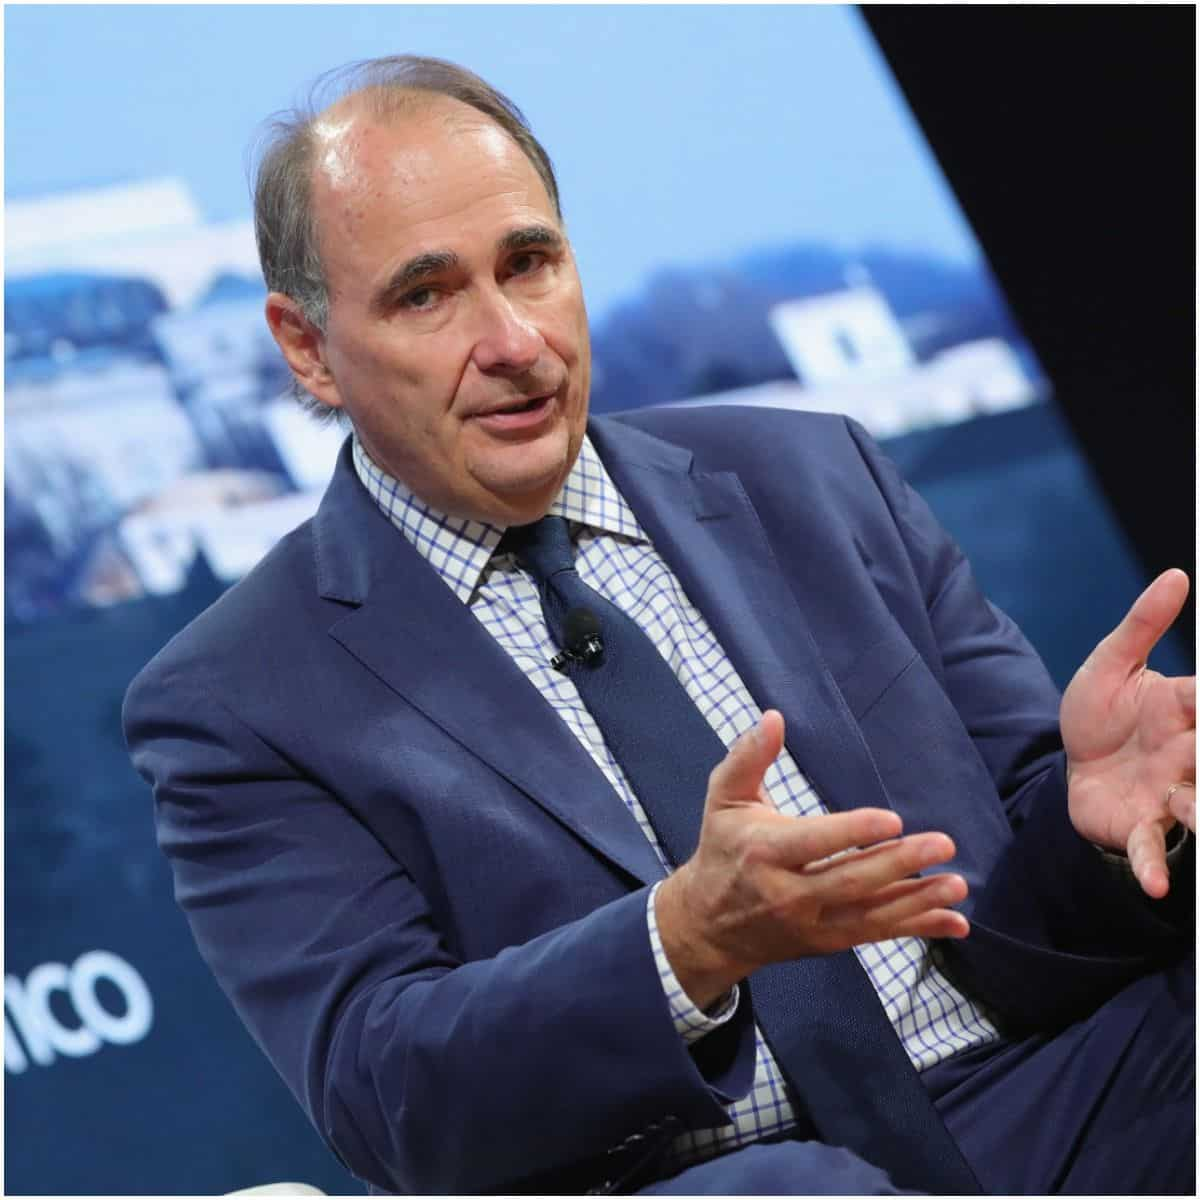 what is the net worth of David Axelrod